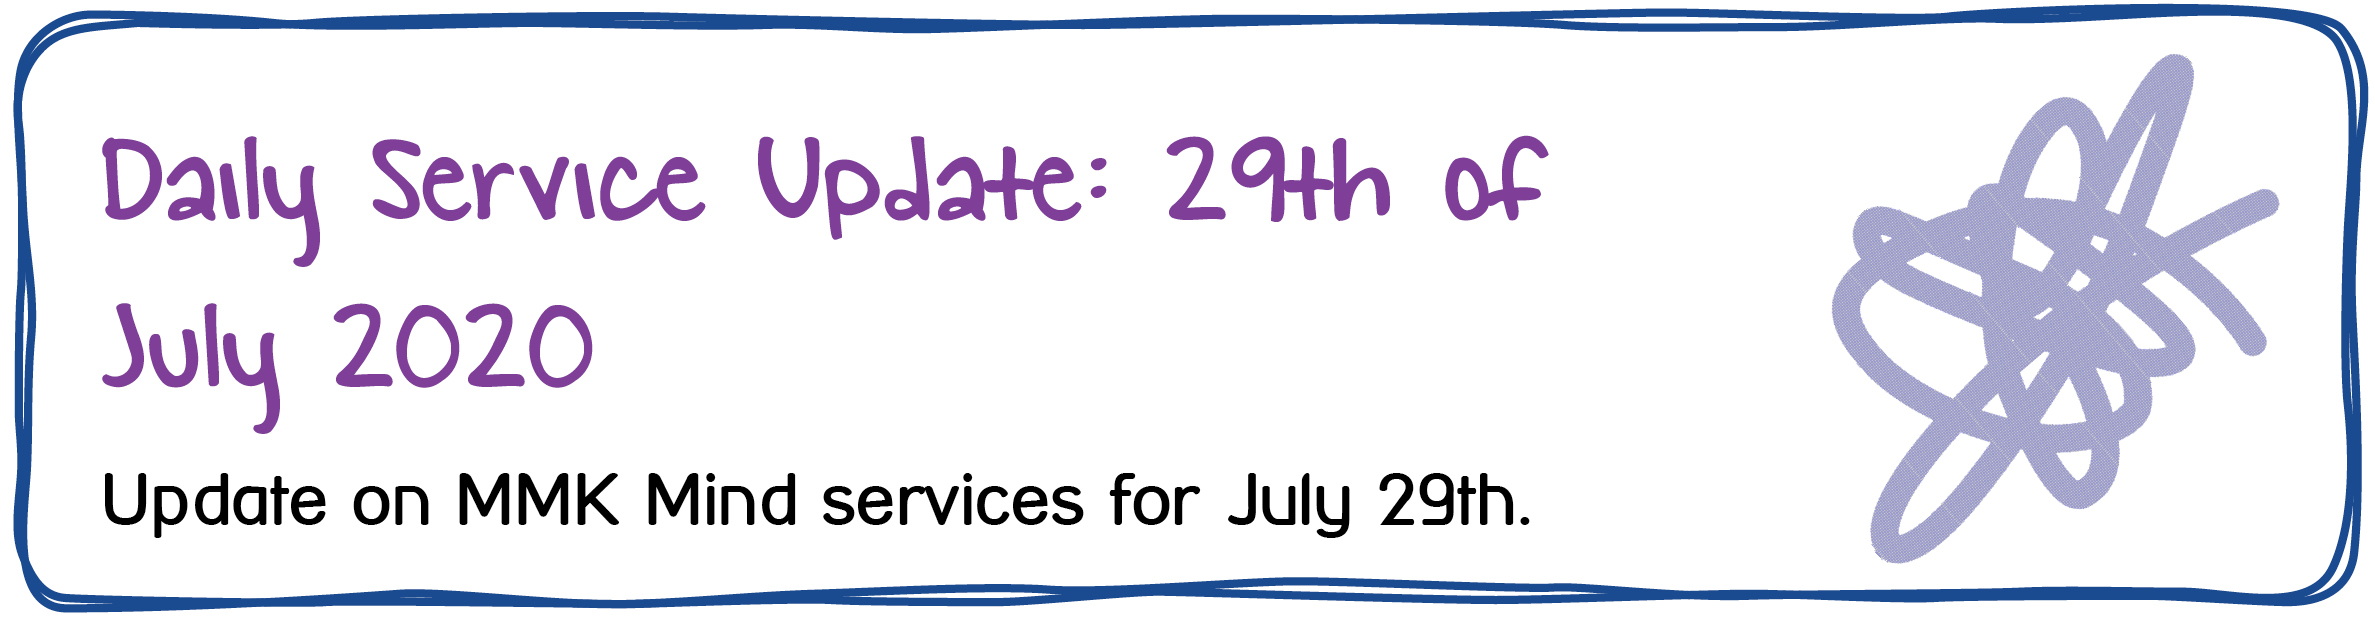 Daily Service Update: 29th of July 2020. Update on MMK Mind services for July 29th.